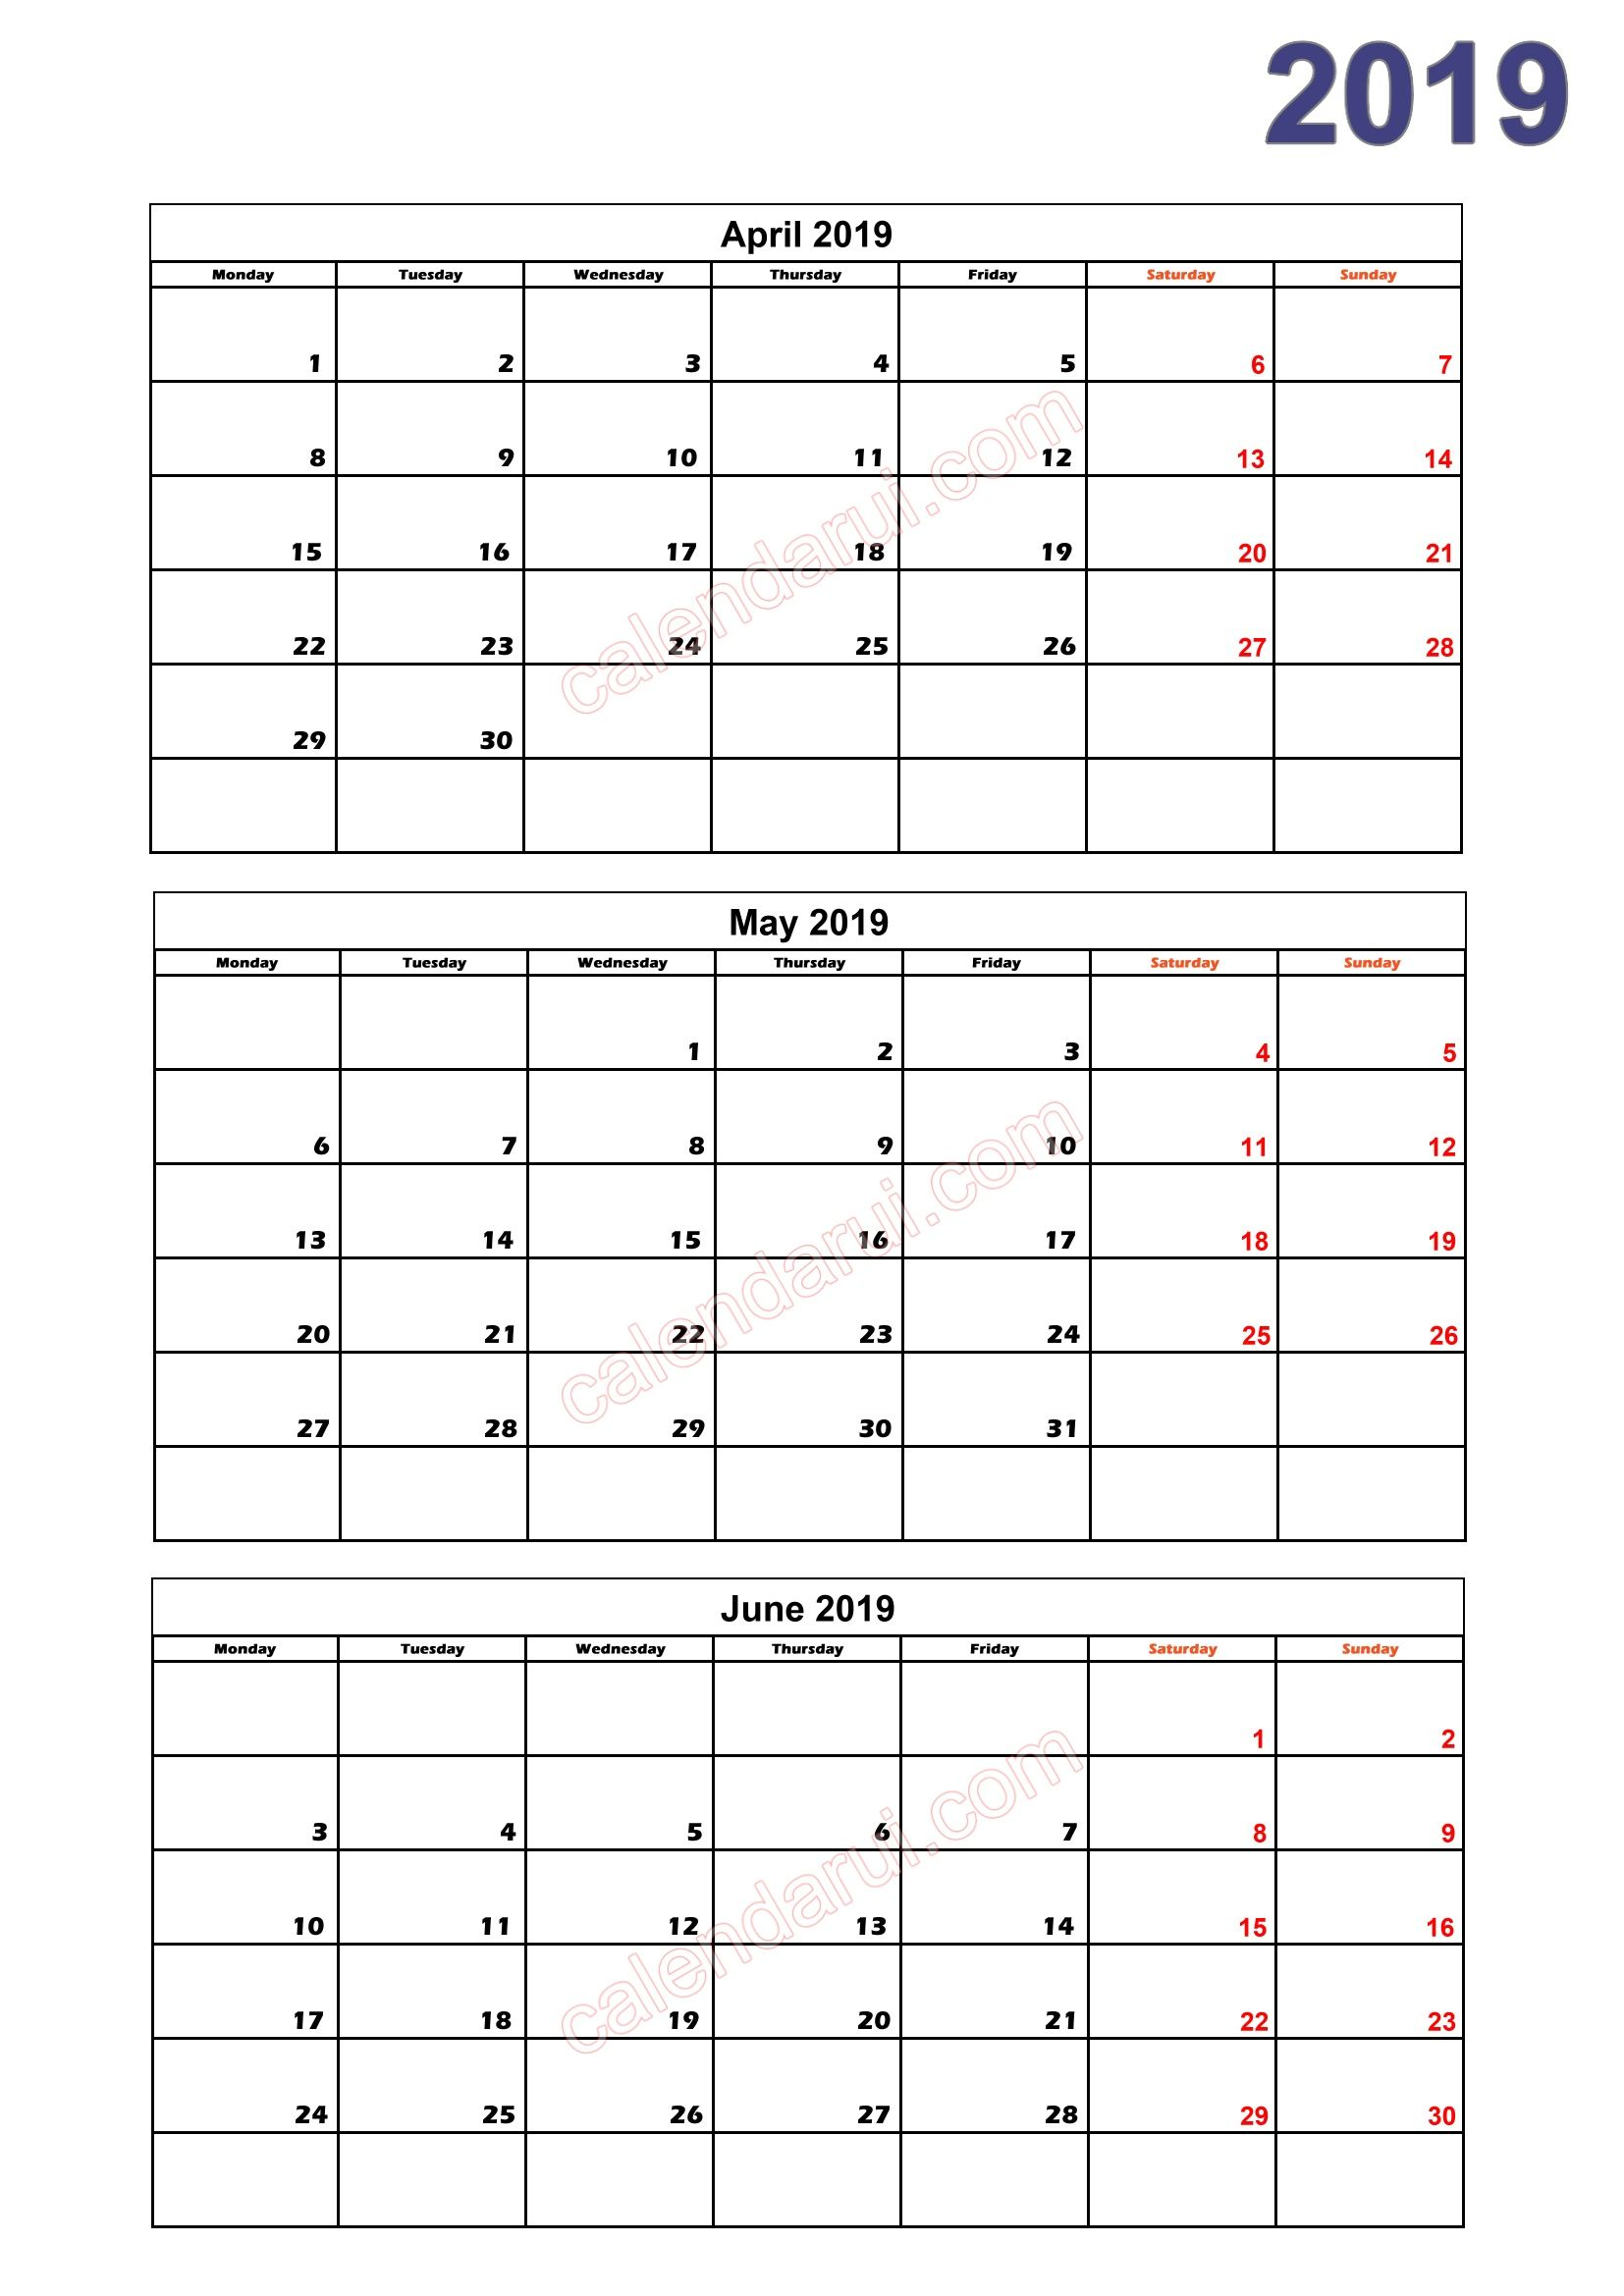 2019 Quarter Calendar 2 Quarter 2 Calendar 2019 Printable Download Free_2 | 2019